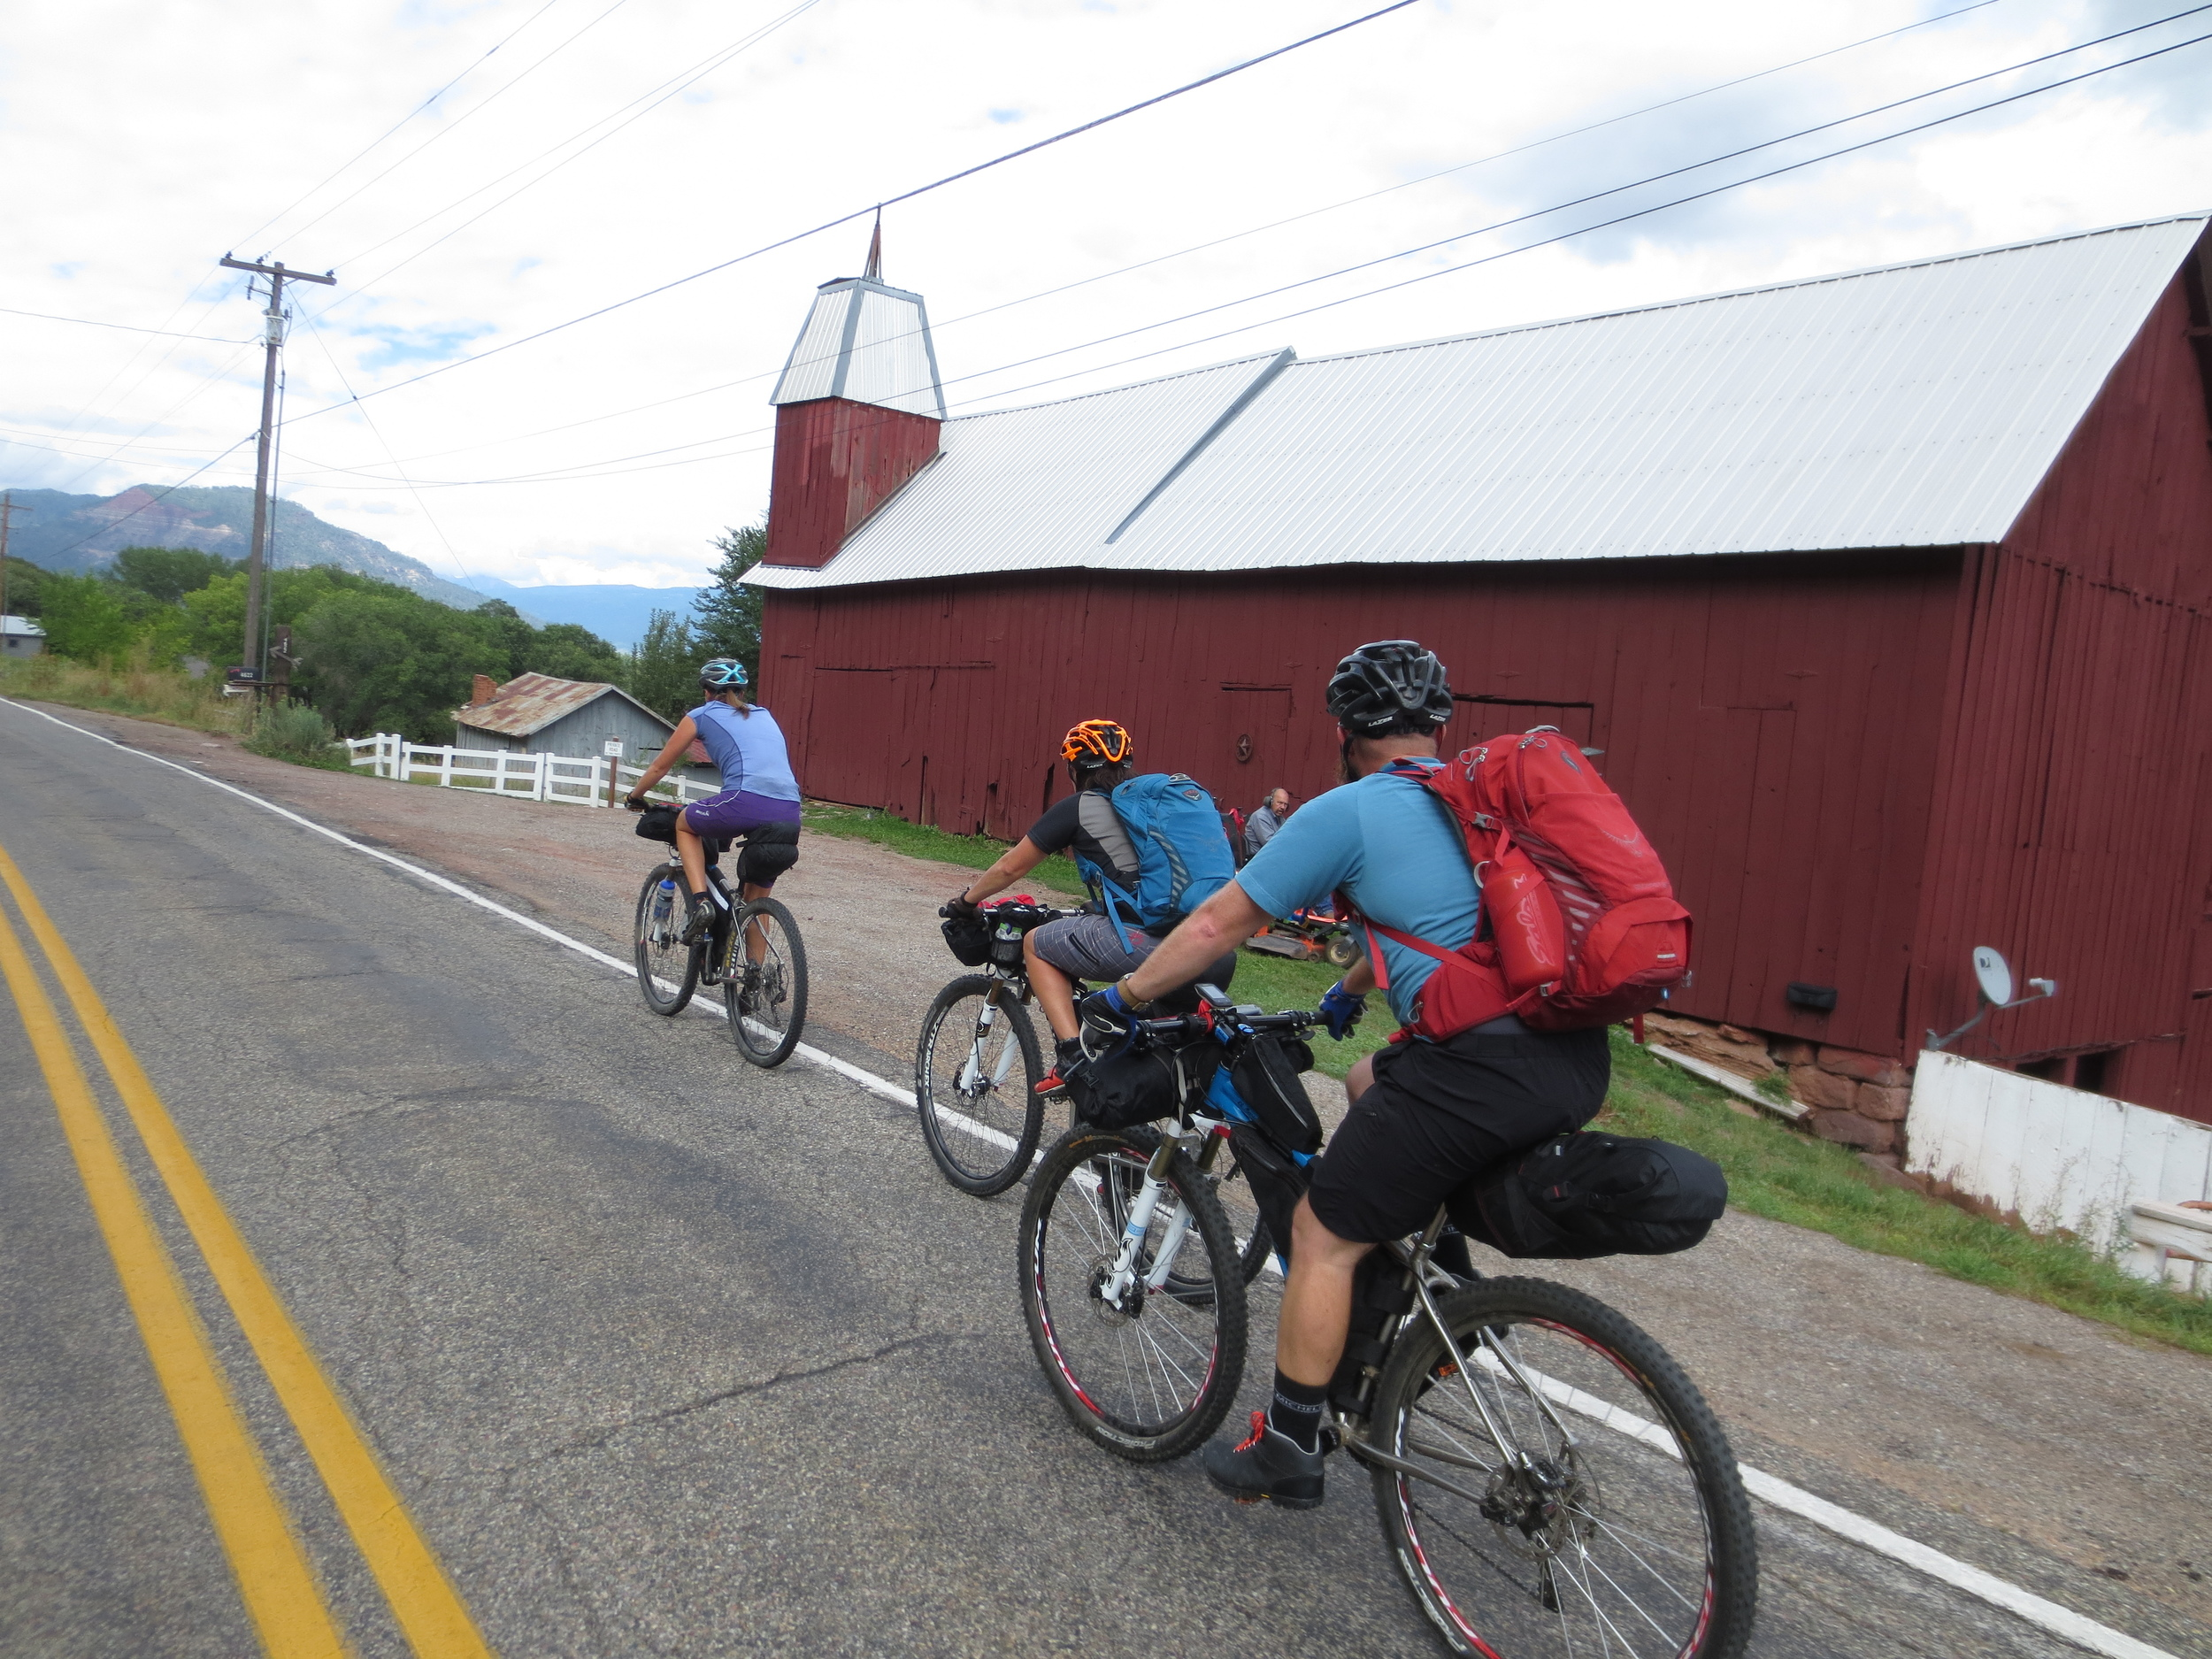 Brian, Ashley, Sandhya and I started our trip by riding north out of town on Saturday afternoon under semi-stormy skies. We had a little titanium party going - we all rode Salsa El Mariachi Ti builds of various kinds!